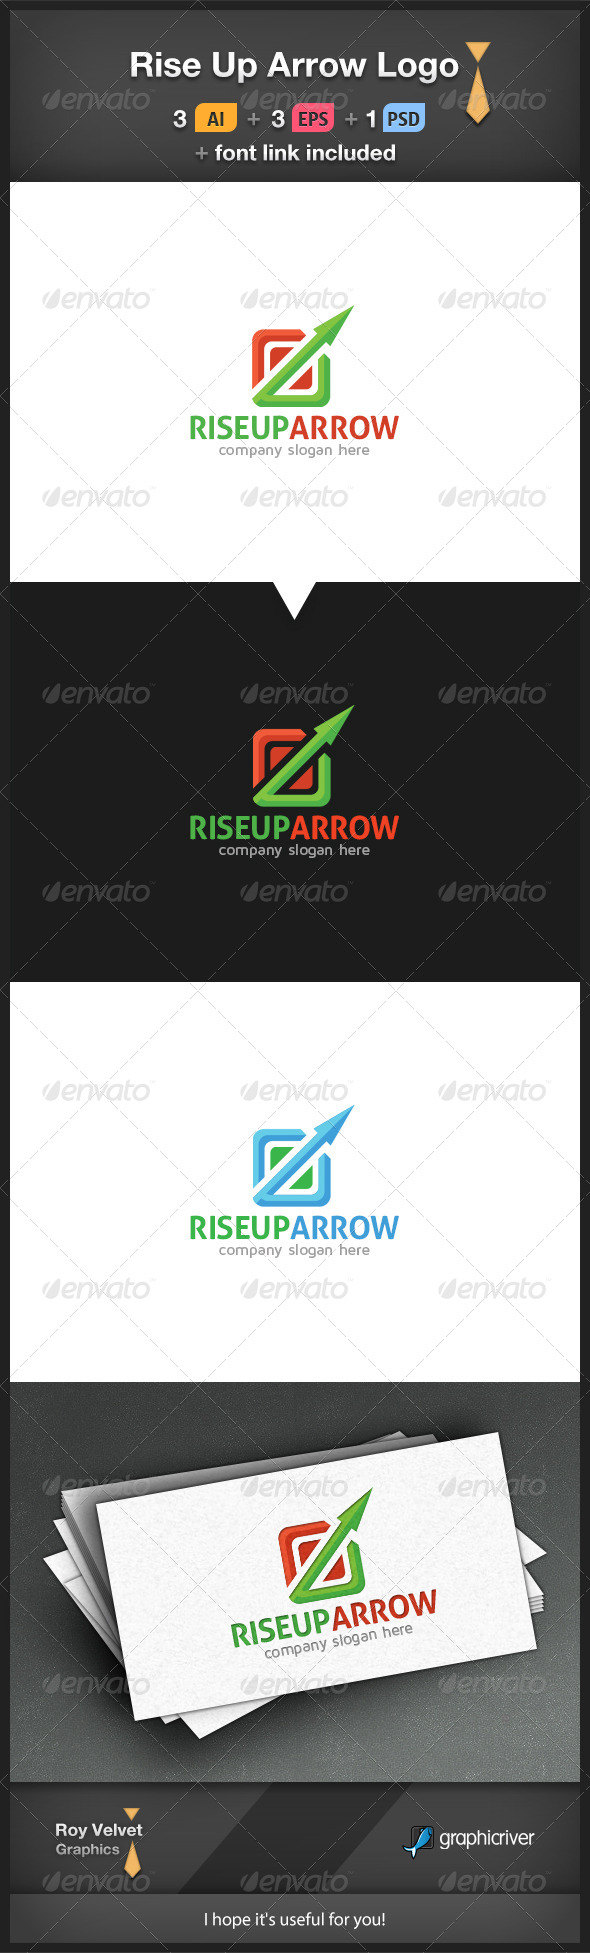 Rise Up Arrow Logo - Symbols Logo Templates